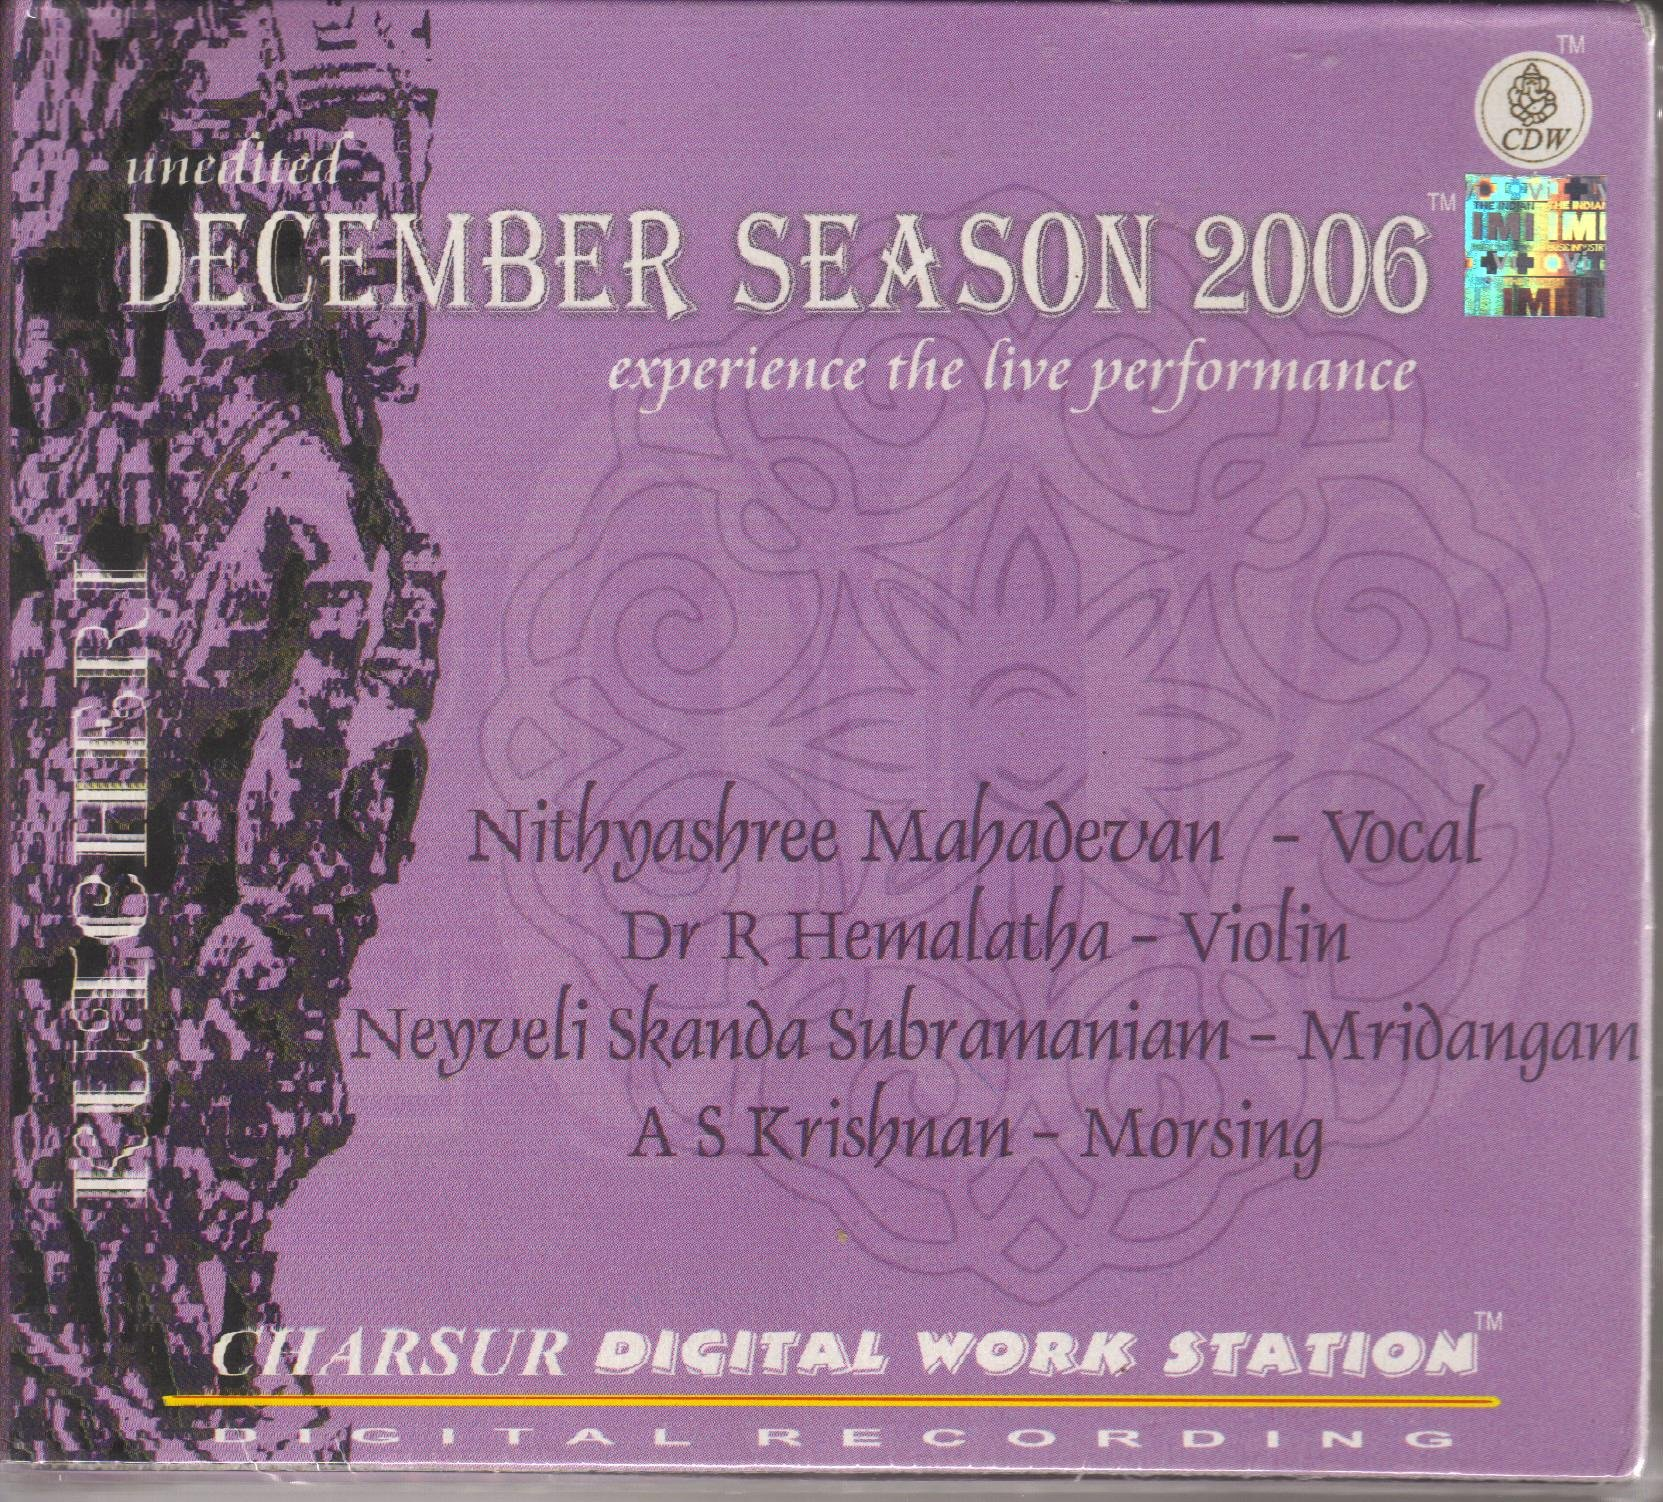 Kutcheri – Nithyashree Mahadevan - Vocal (Dr. R Hemalatha-Violin, Neyveli Skanda Subramaniam-Mridangam; AS Krishnan-Morsing) – Unedited Live Recording Of A Concert Held In Narada Gana Sabha On 17 December 2006 - Experience The Live Performance (3-CD P by Charsur